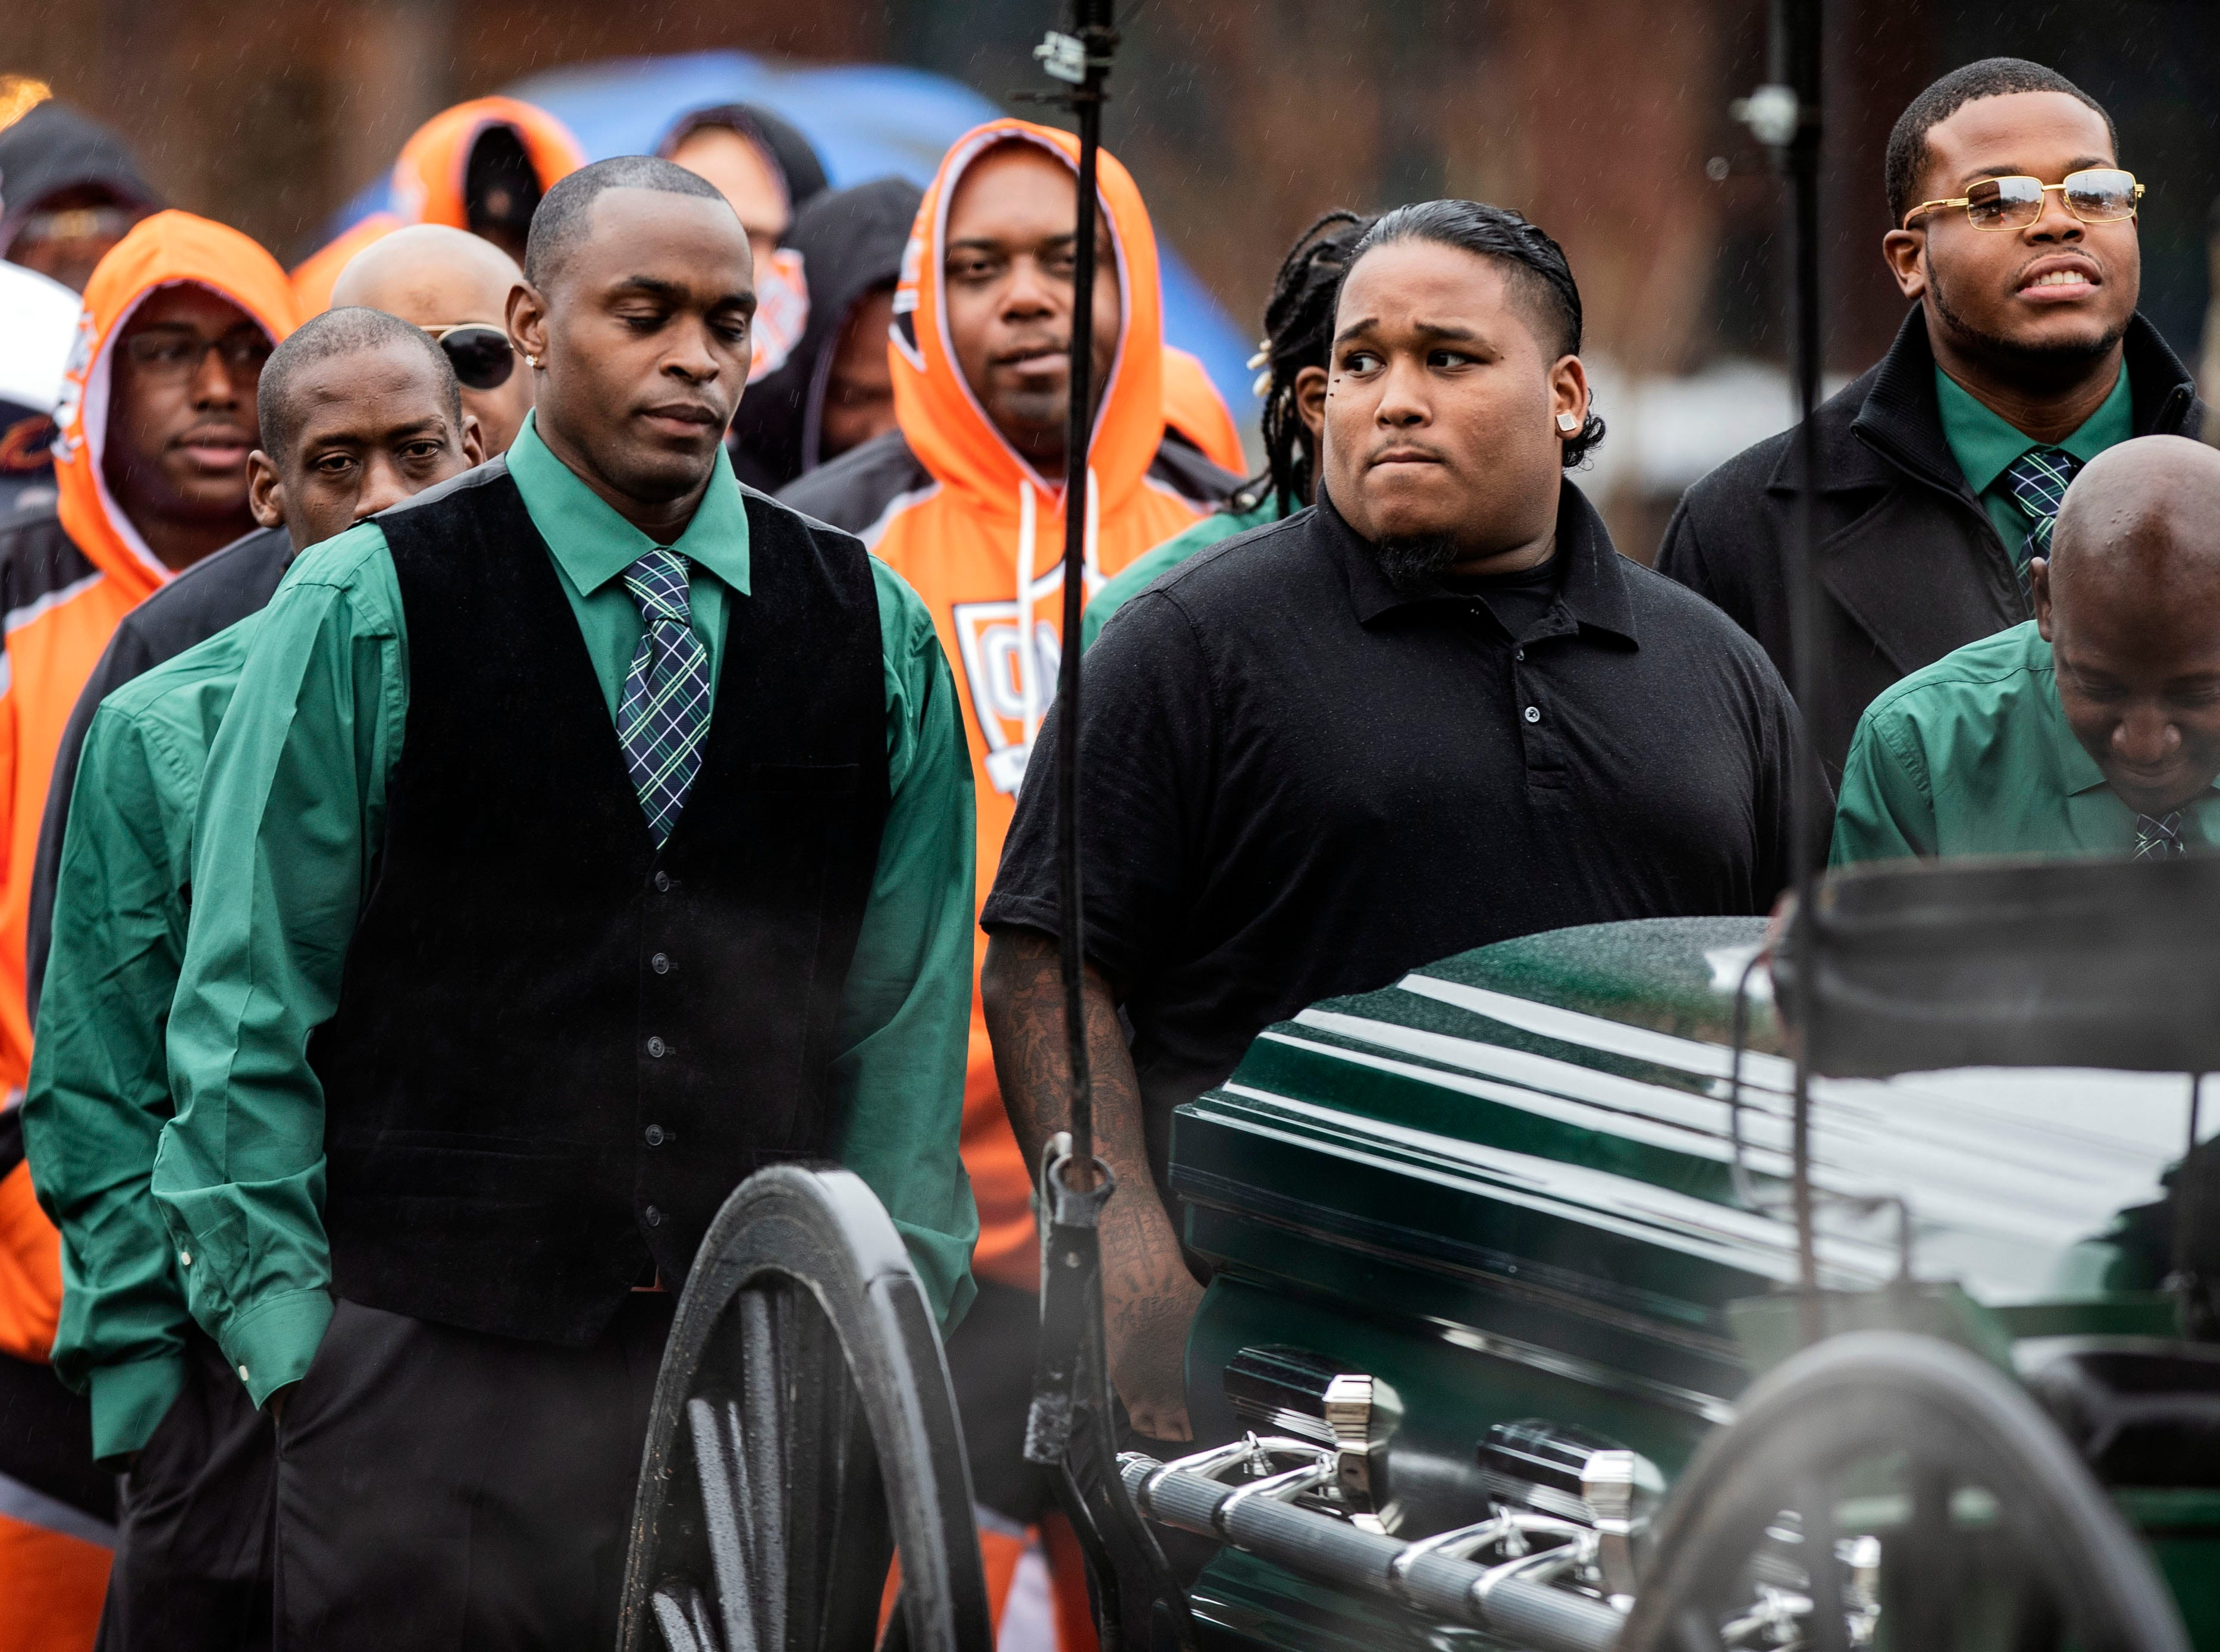 Wolfpack and Orange Mound Youth Association coaches walk behind a carriage carrying Kameren Johnson's casket before he is laid to rest, Saturday, Dec. 15, 2018.